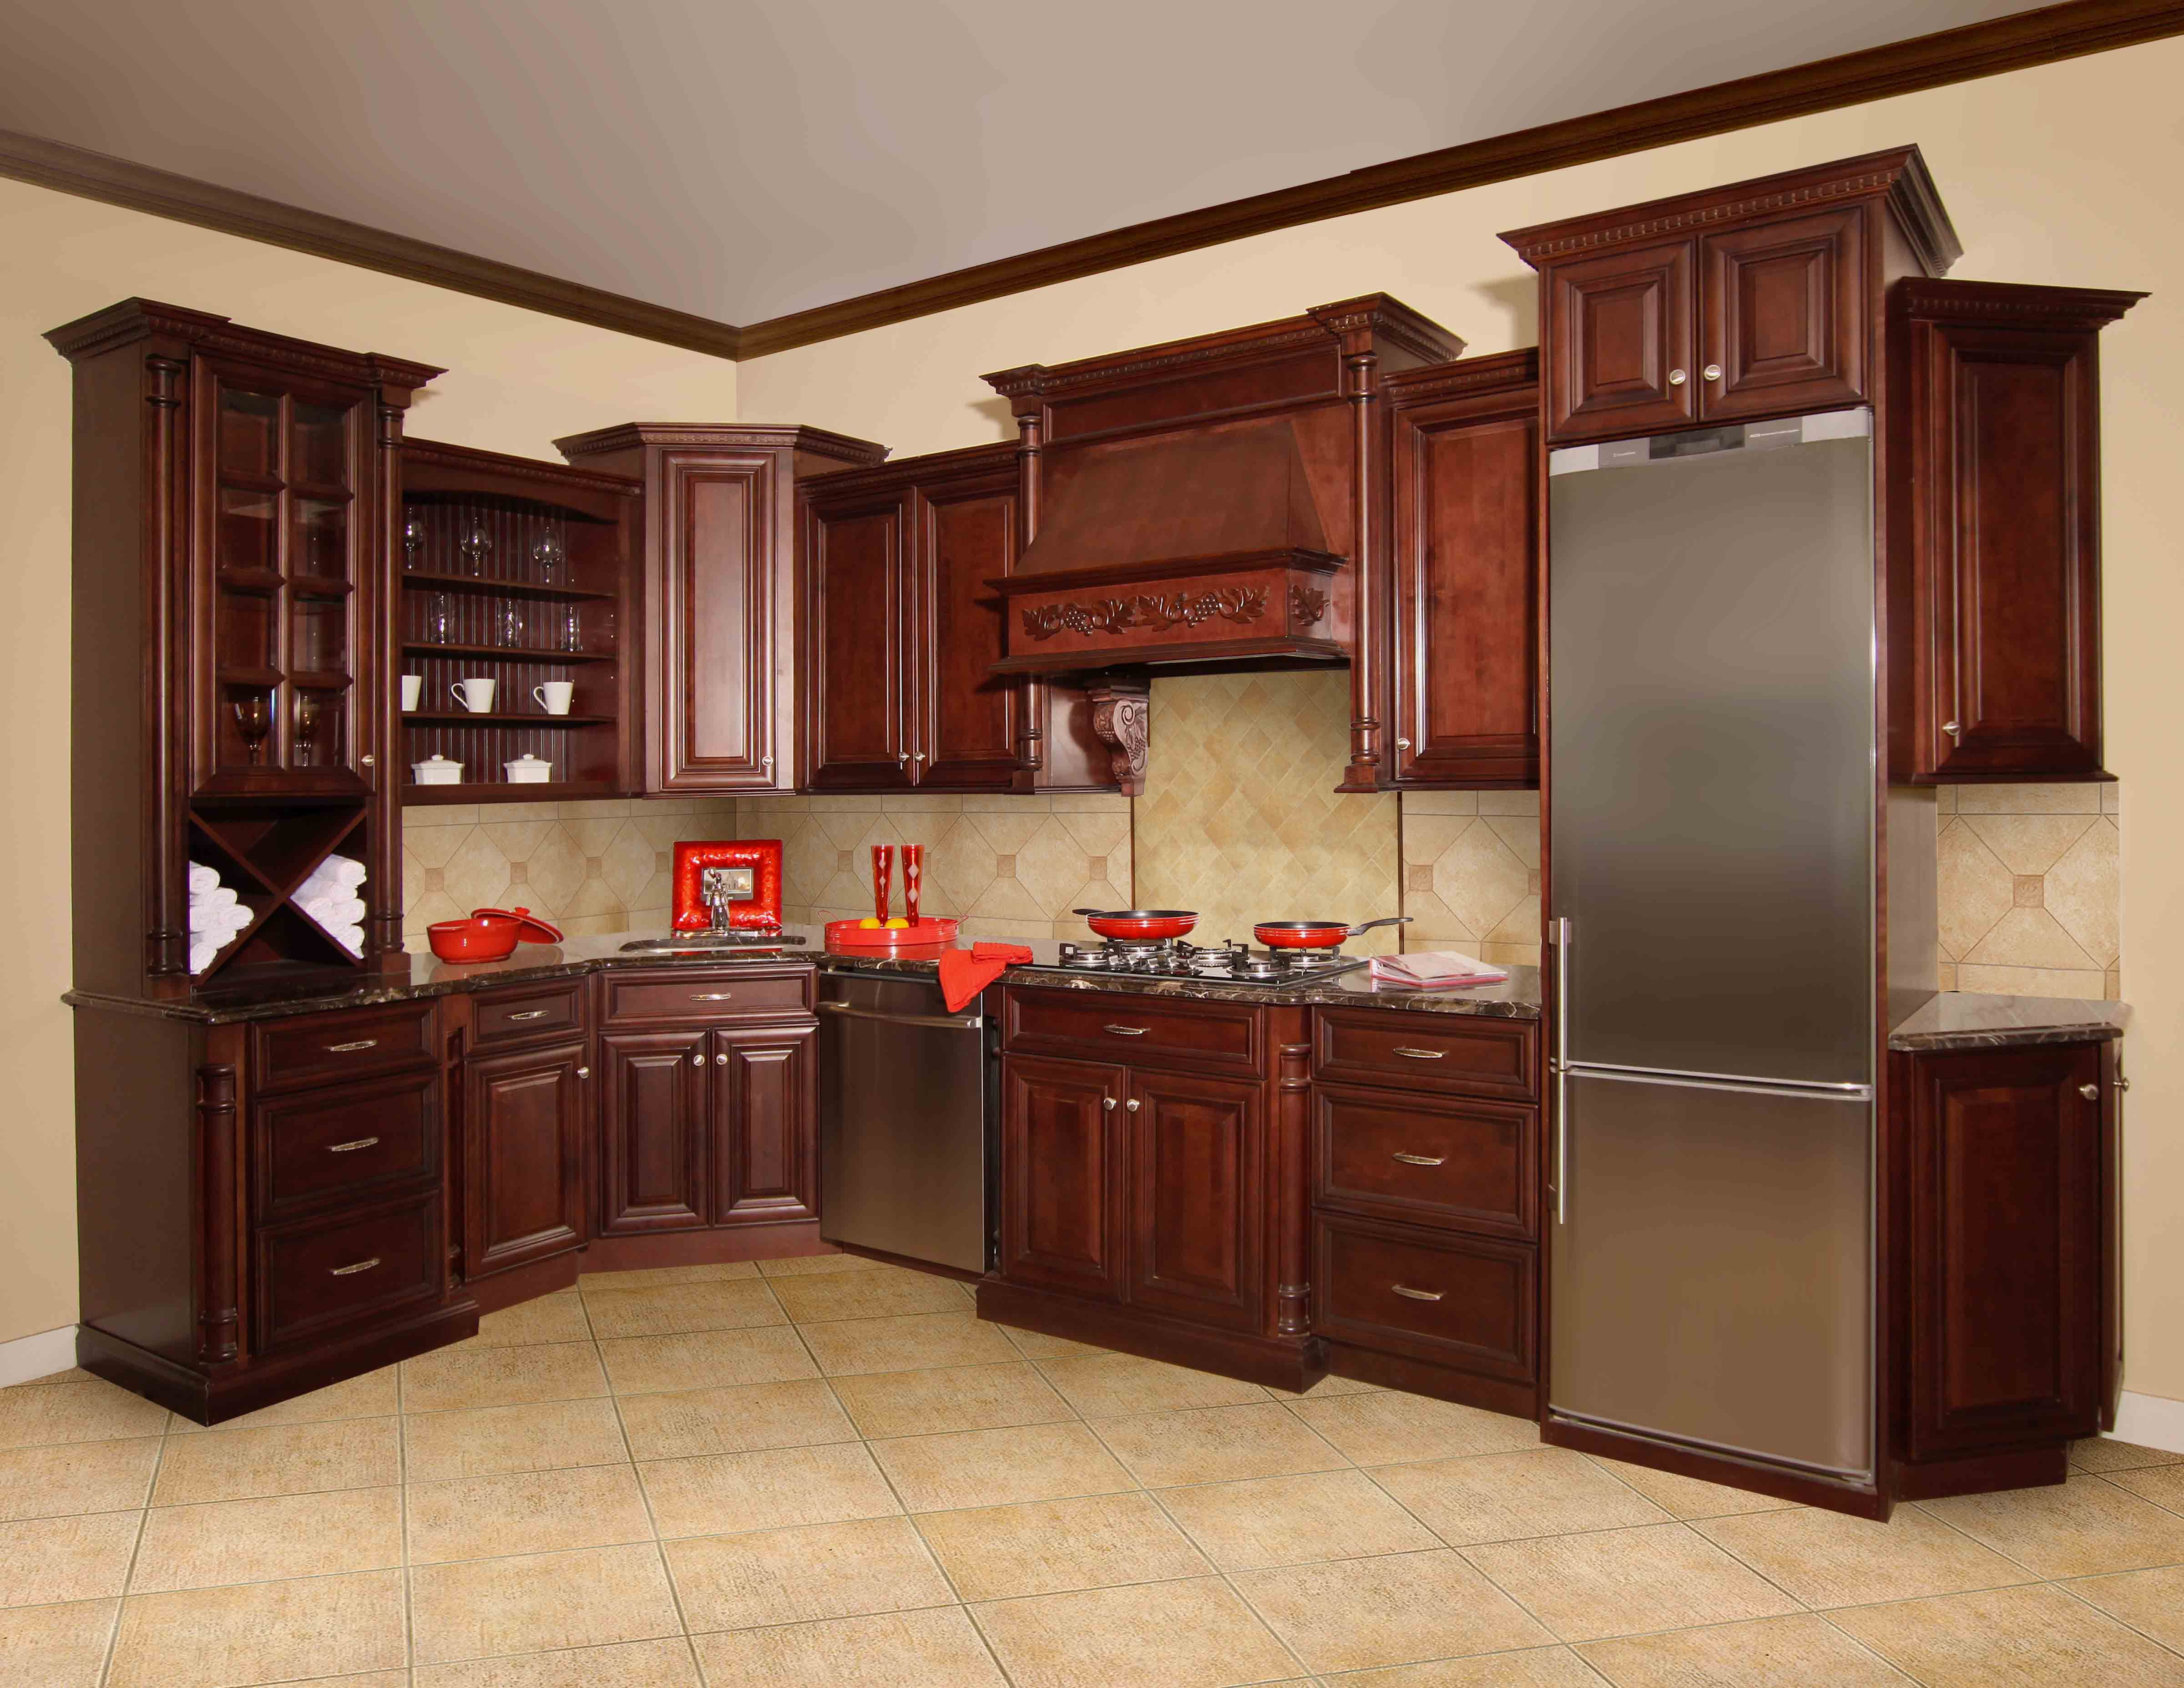 Striking And Rich Our Elite Merlot Kitchen Cabinets Are Sure To Be A Fan Favorite A Cheap Kitchen Cabinets Assembled Kitchen Cabinets Online Kitchen Cabinets